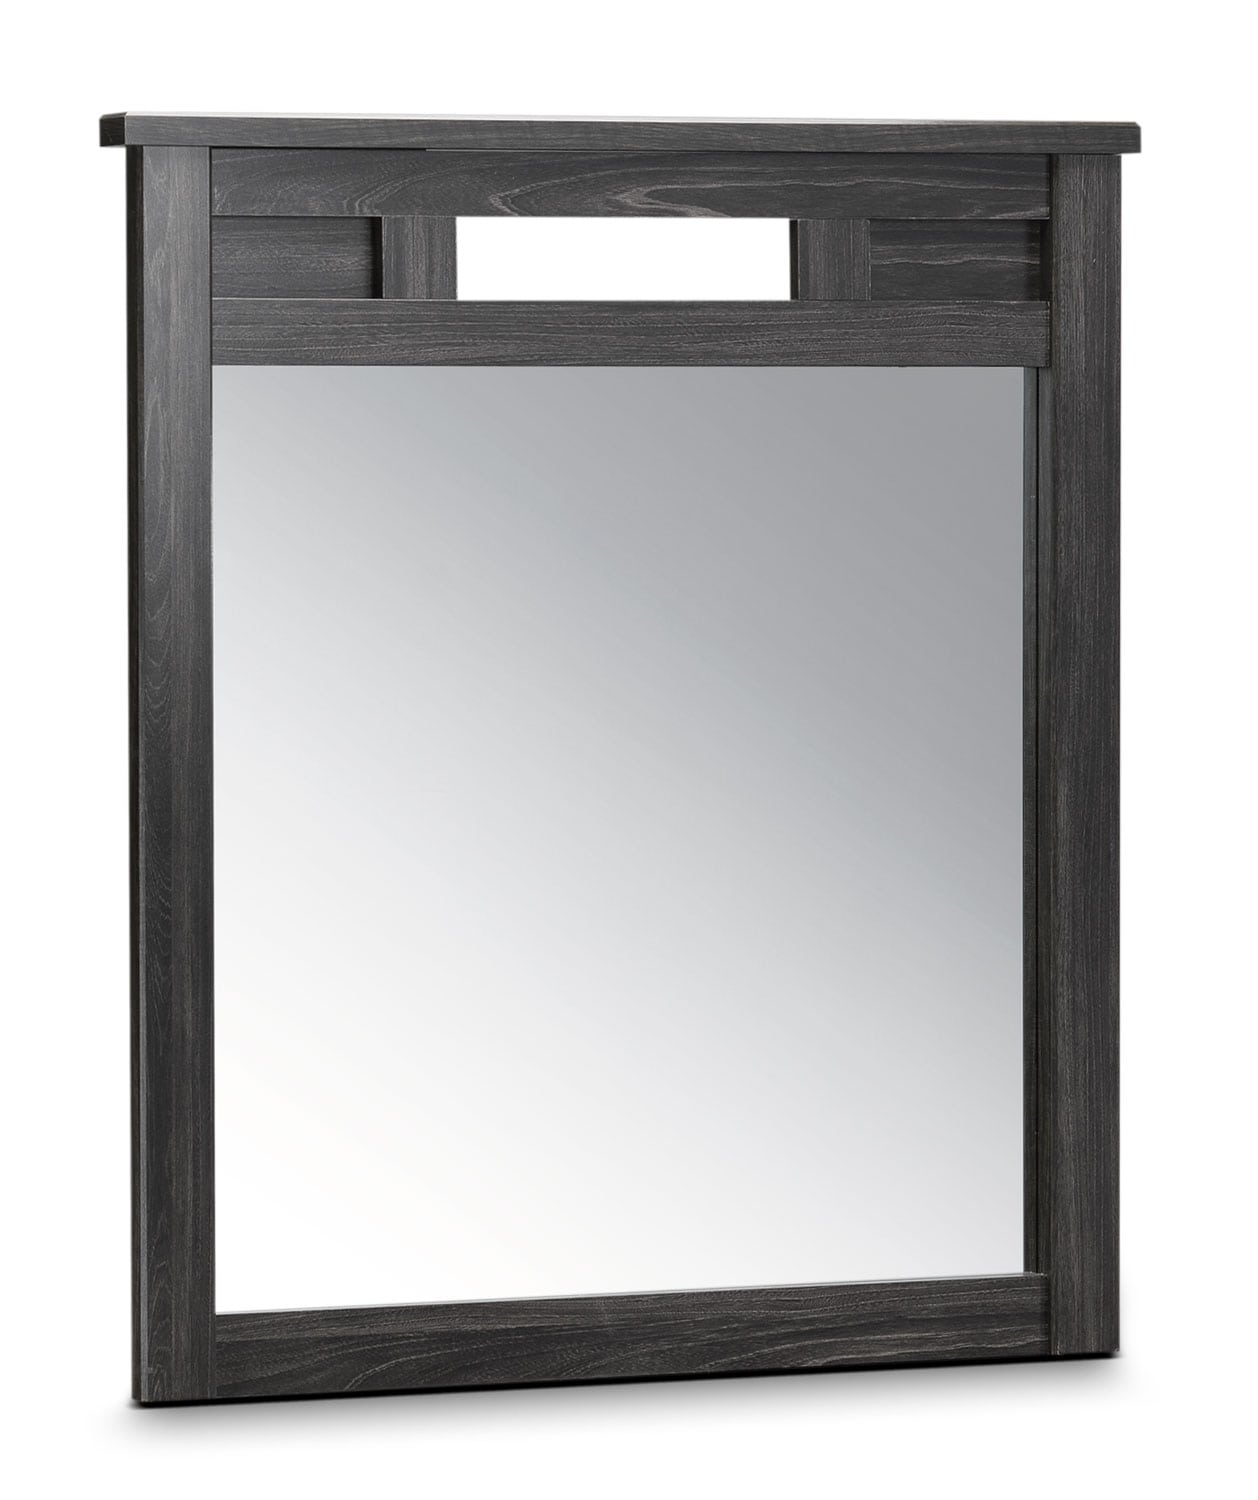 Bedroom Furniture - Gordon Mirror - Coal